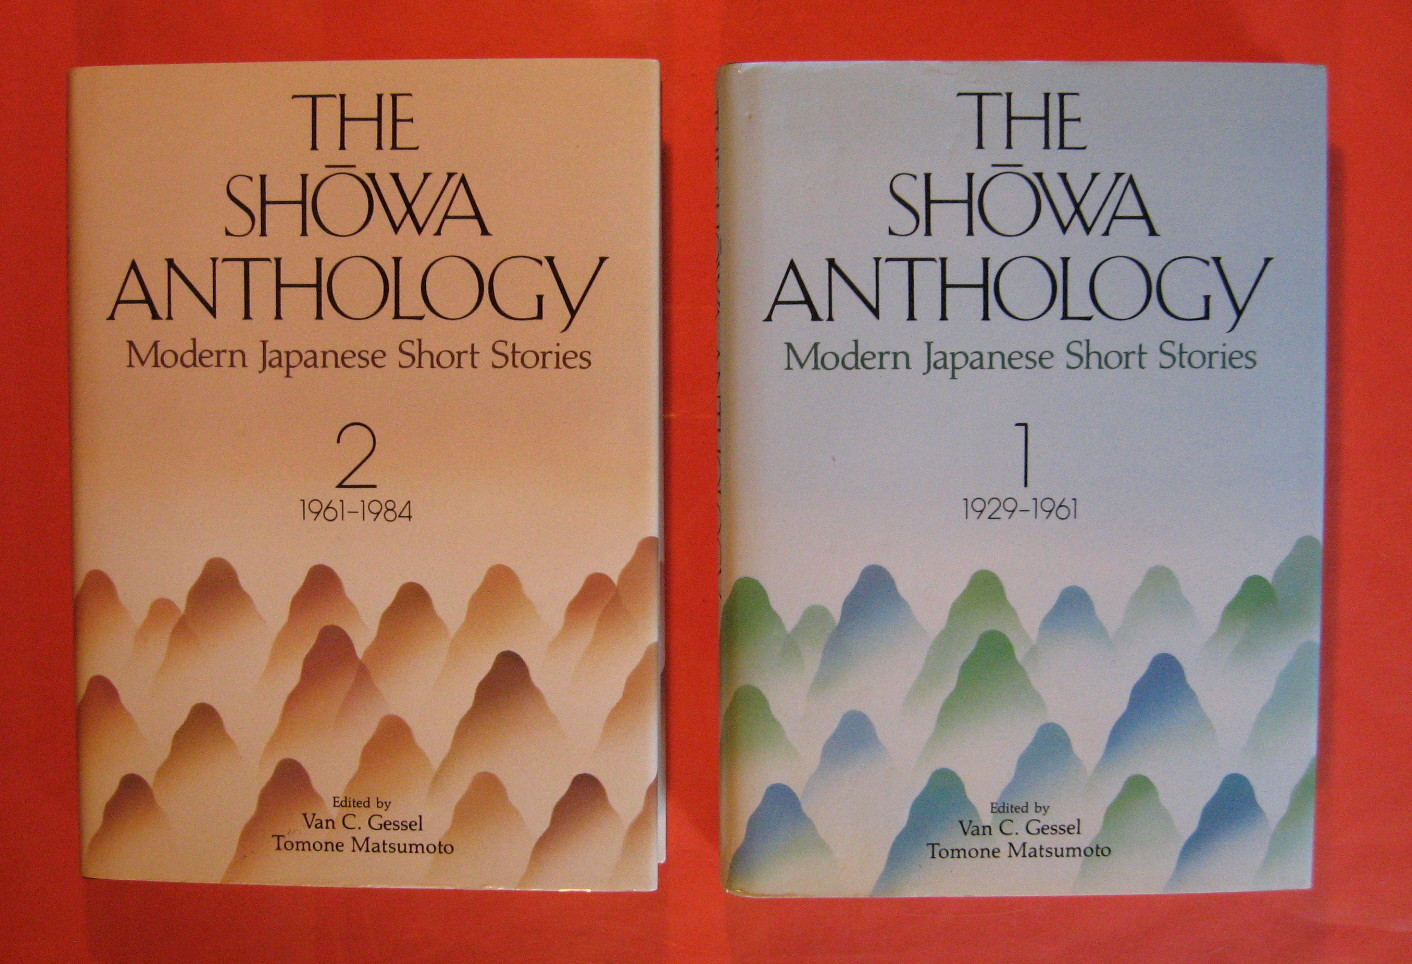 The Showa Anthology: Modern Japanese Short Stories 1929-1961 (V. 1) and Modern Japanese Short Stories 1961 - 1984 (V. 2), Gessel, Van C. & Matsumoto, Tomone